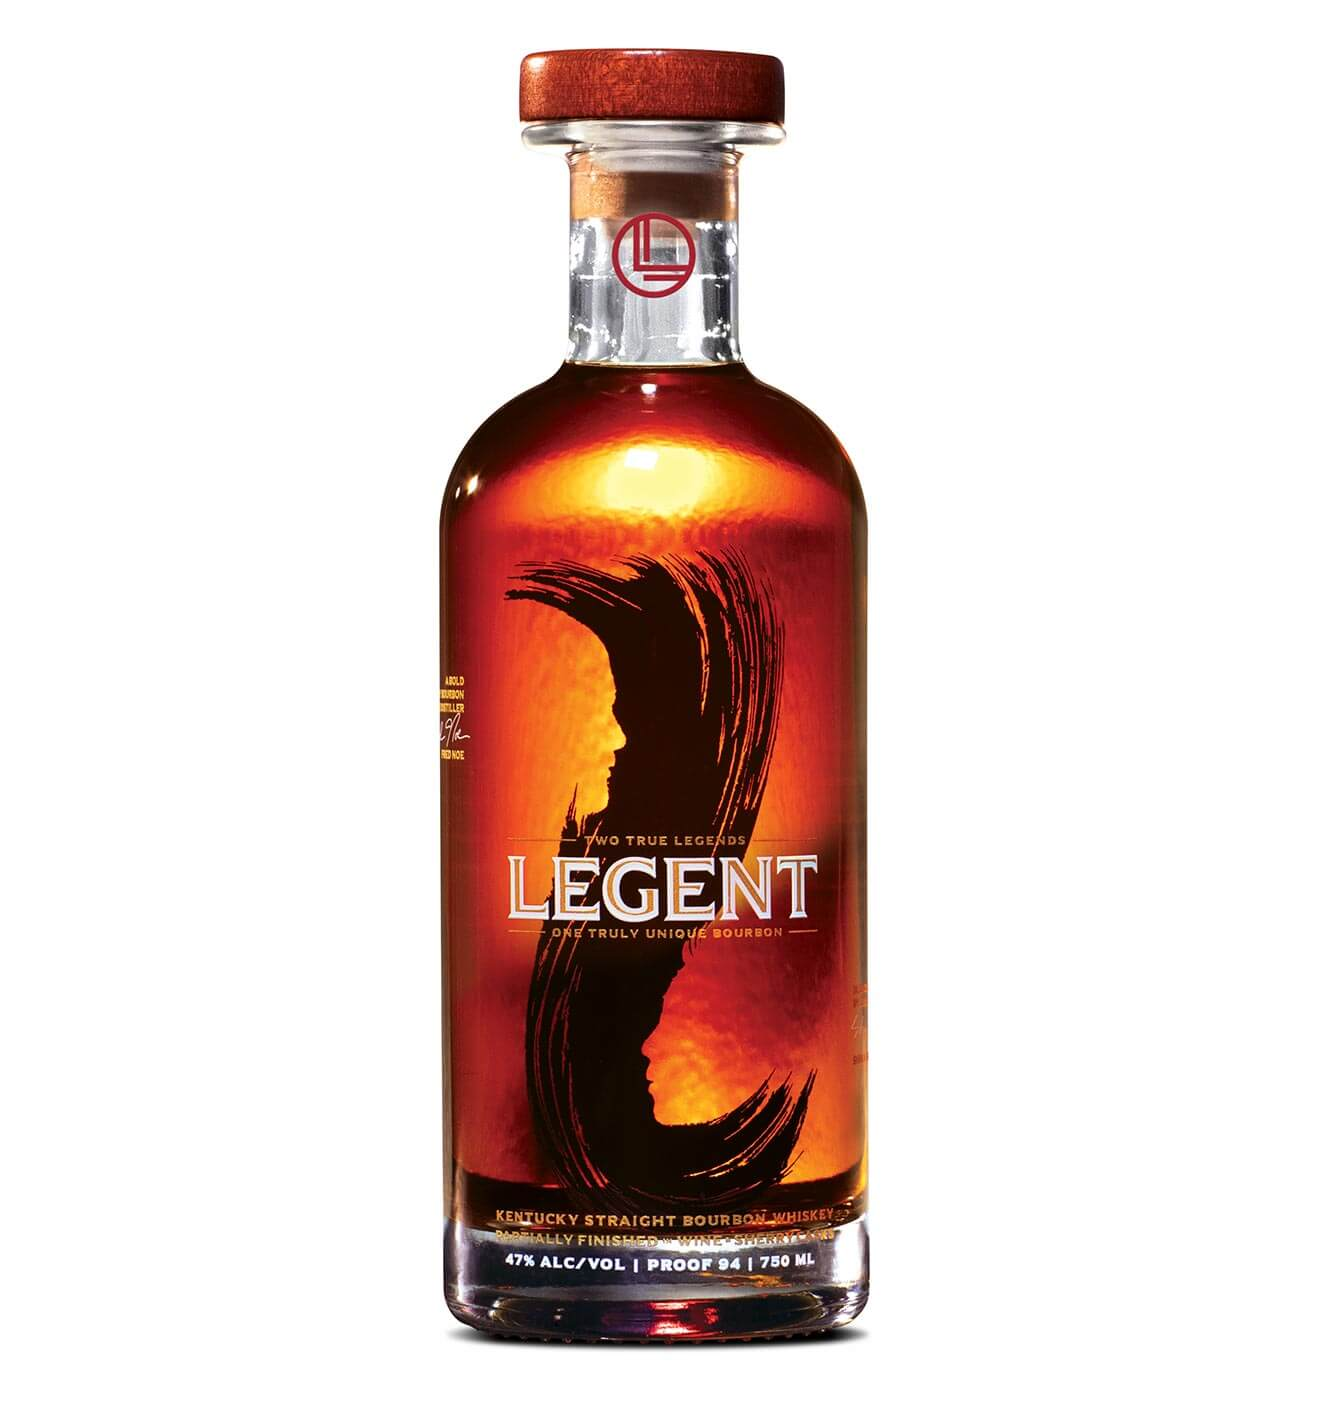 Legent Kentucky Straight Bourbon Whiskey, bottle on white